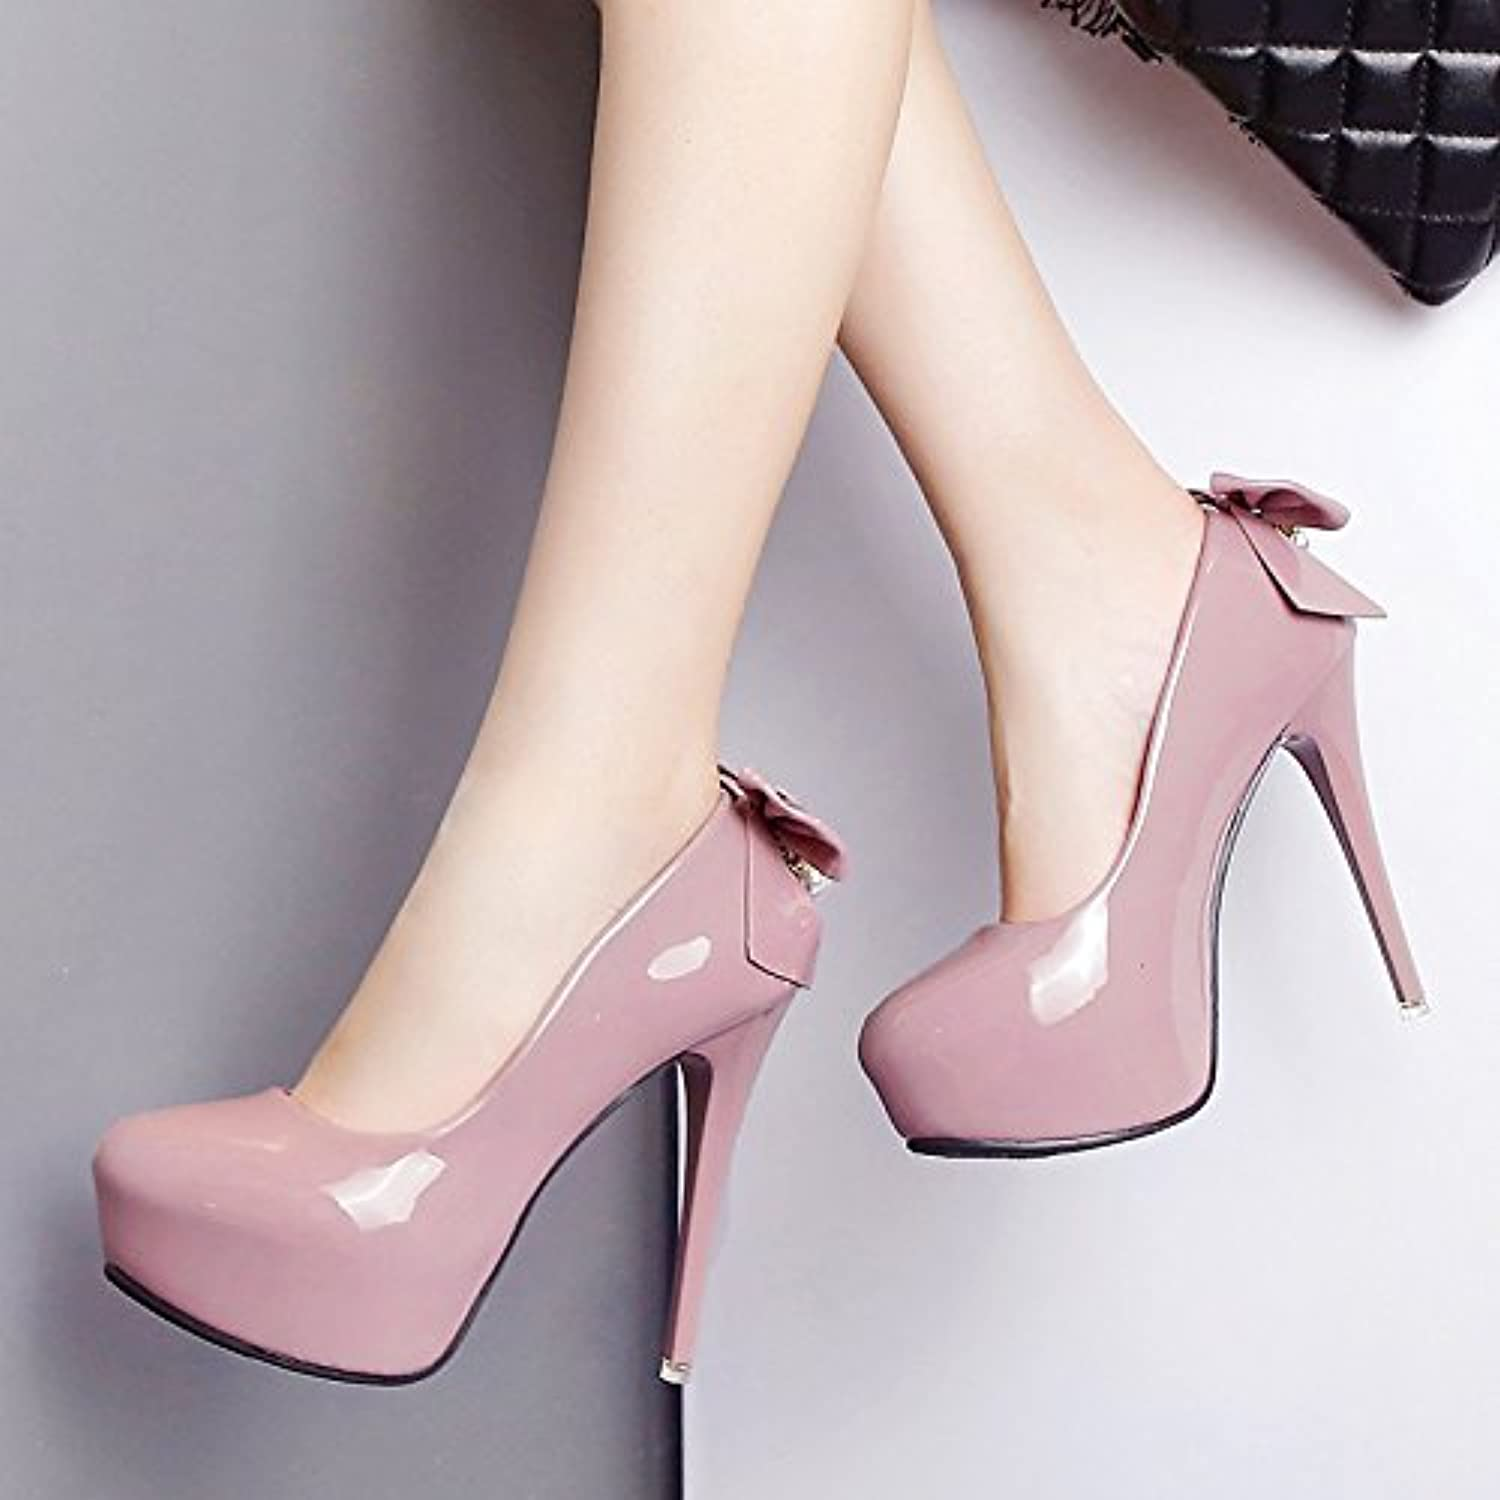 130cf940c34 ZHZNVX Women s shoes waterproof Taiwan high with with with stylish new fall  Bow Tie lady high heels fine with beaded waterproof... B07CGL7RZY Parent  29c60b